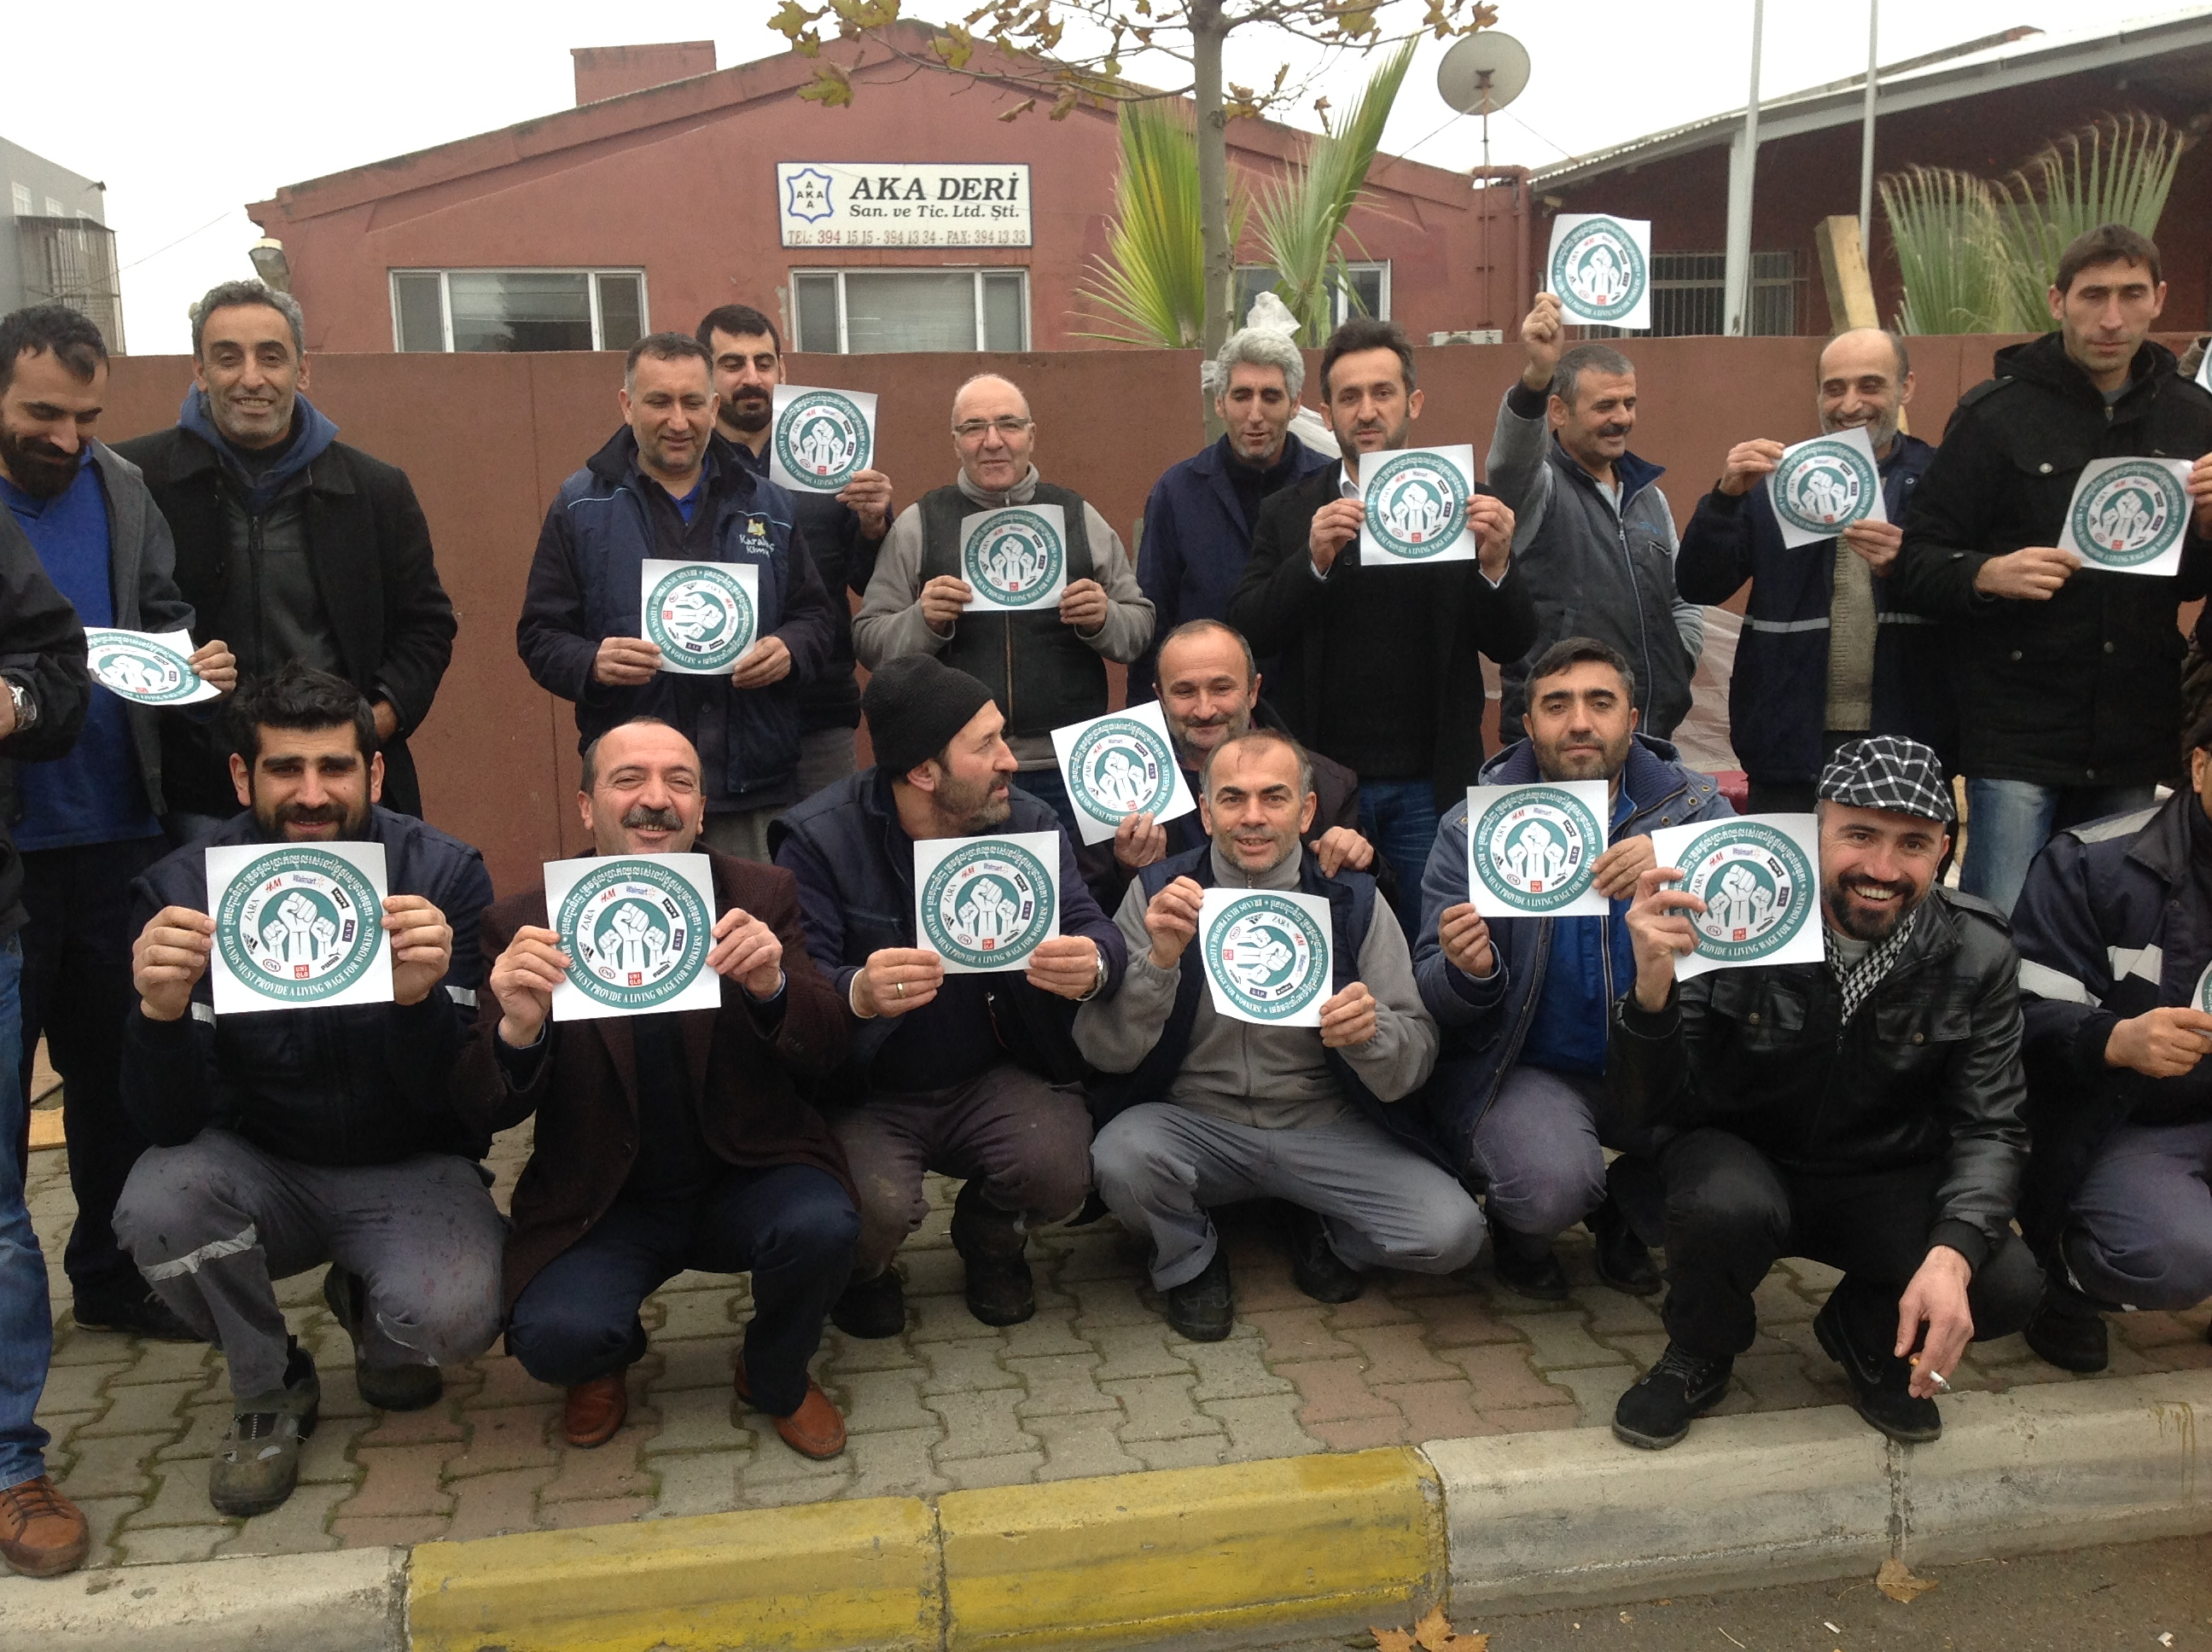 Workers at AKA Deri, members of Deriteks in Turkey demonstrate in solidarity with Cambodian workers